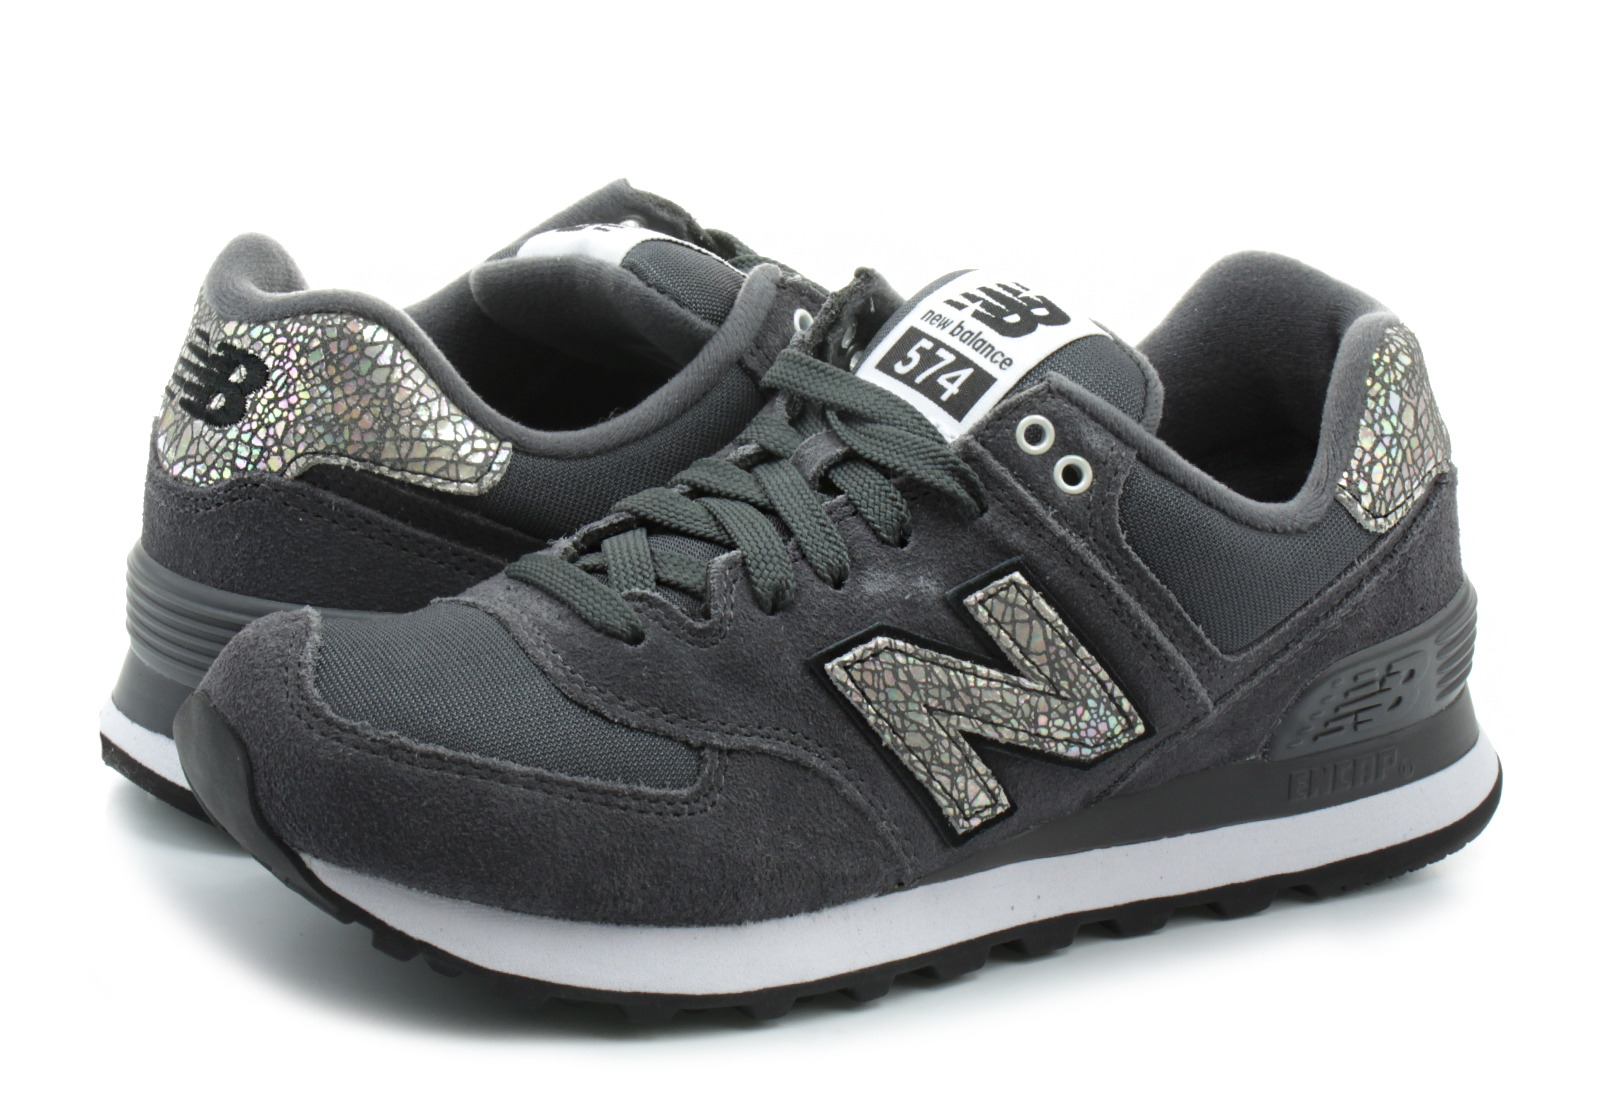 new balance shoes wl574 wl574cid online shop for sneakers shoes and boots. Black Bedroom Furniture Sets. Home Design Ideas